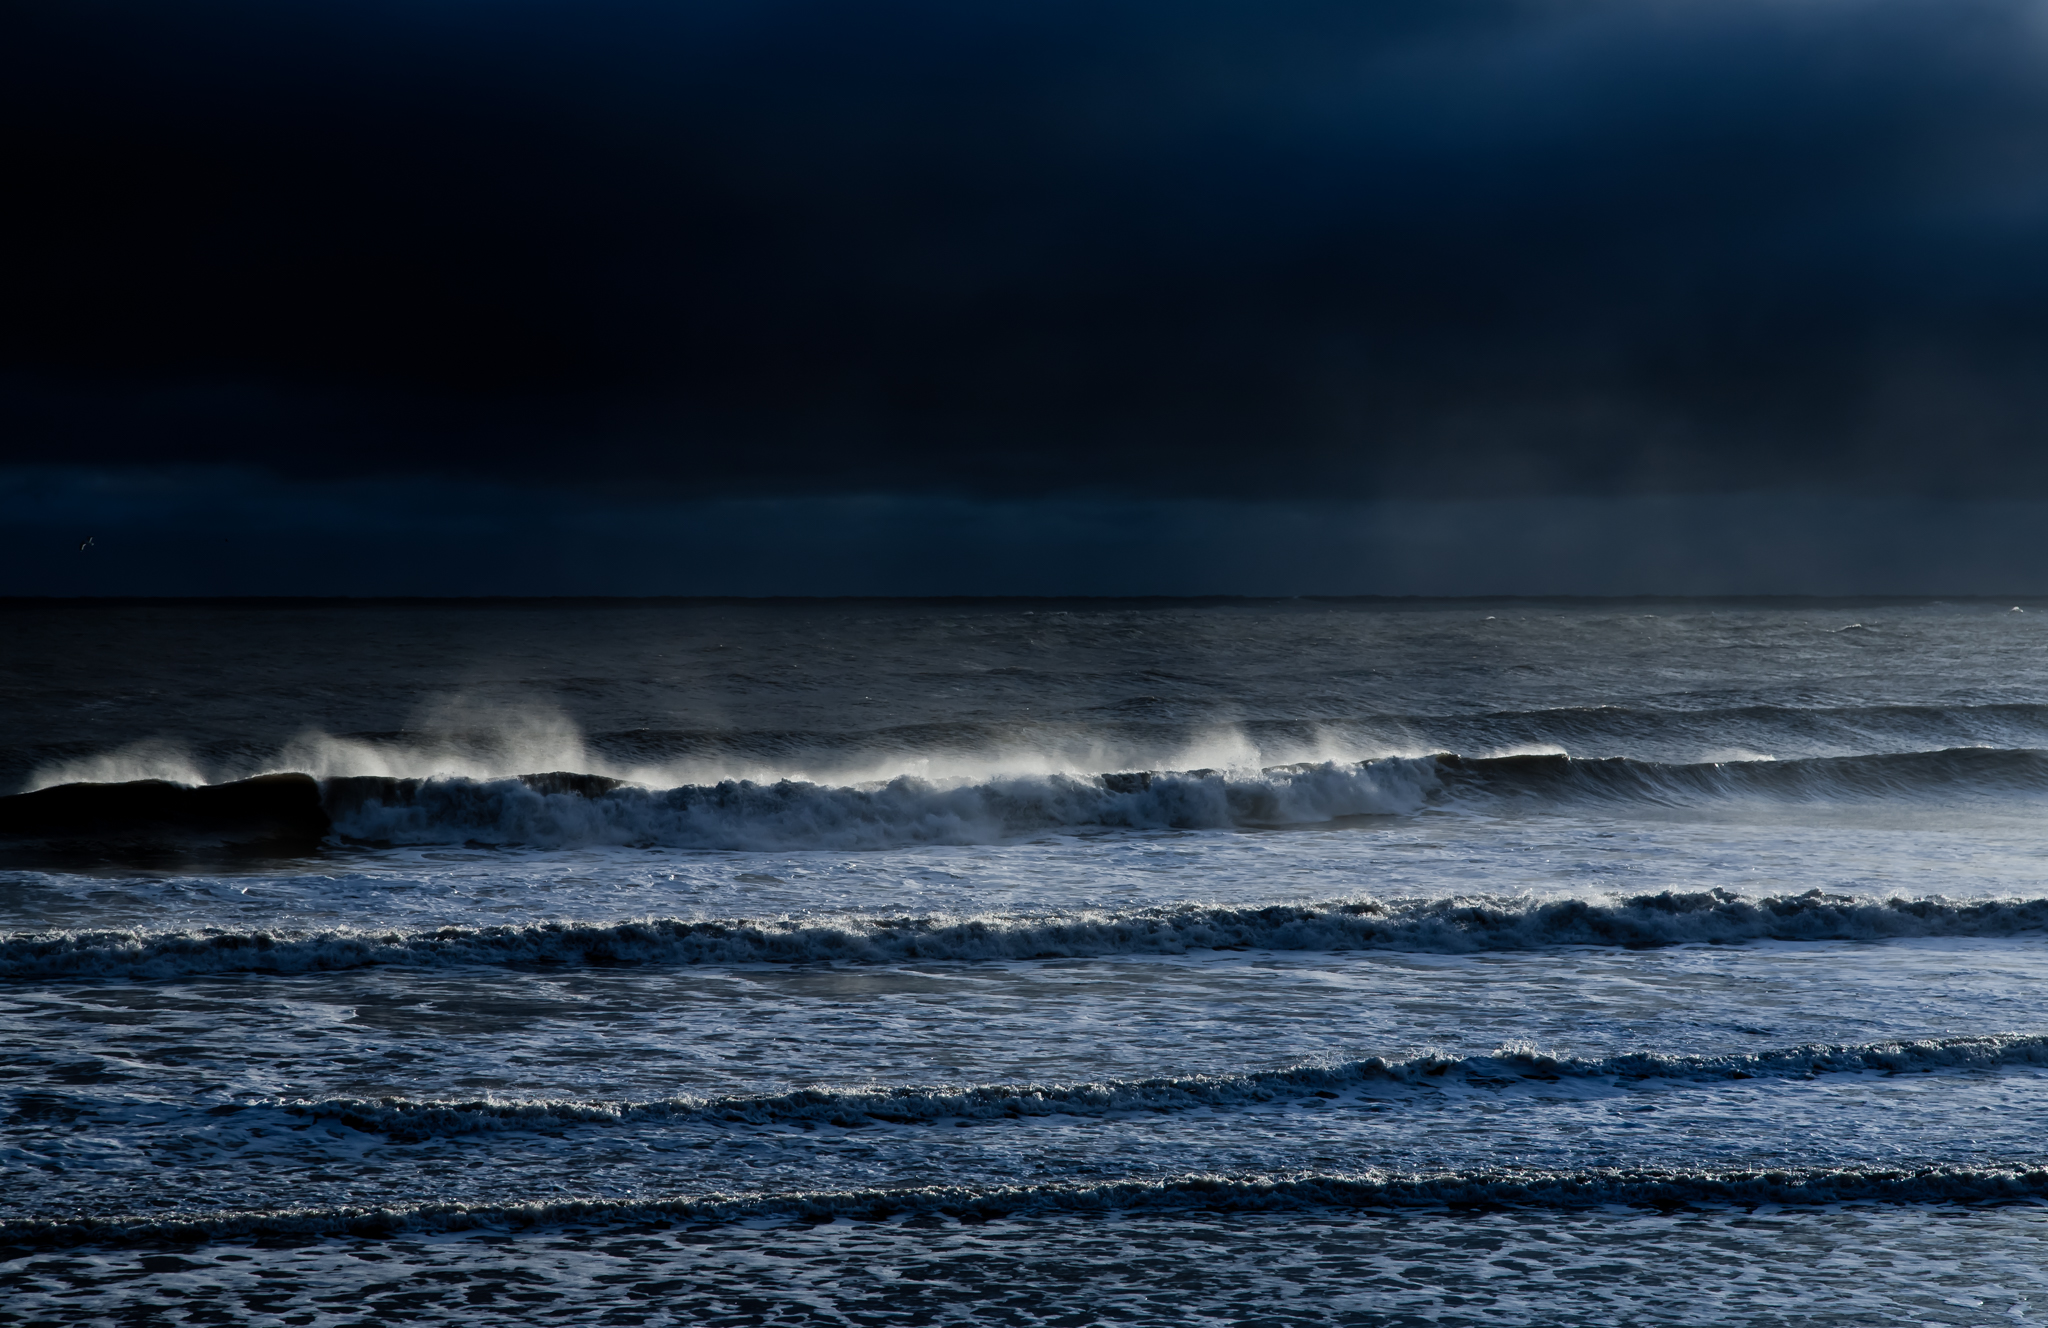 Waves are well known for their soothing effect, not just the sound but the colour, the shape and the constancy of them. This image perfectly captures the gamut of pleasure waves have to offer.